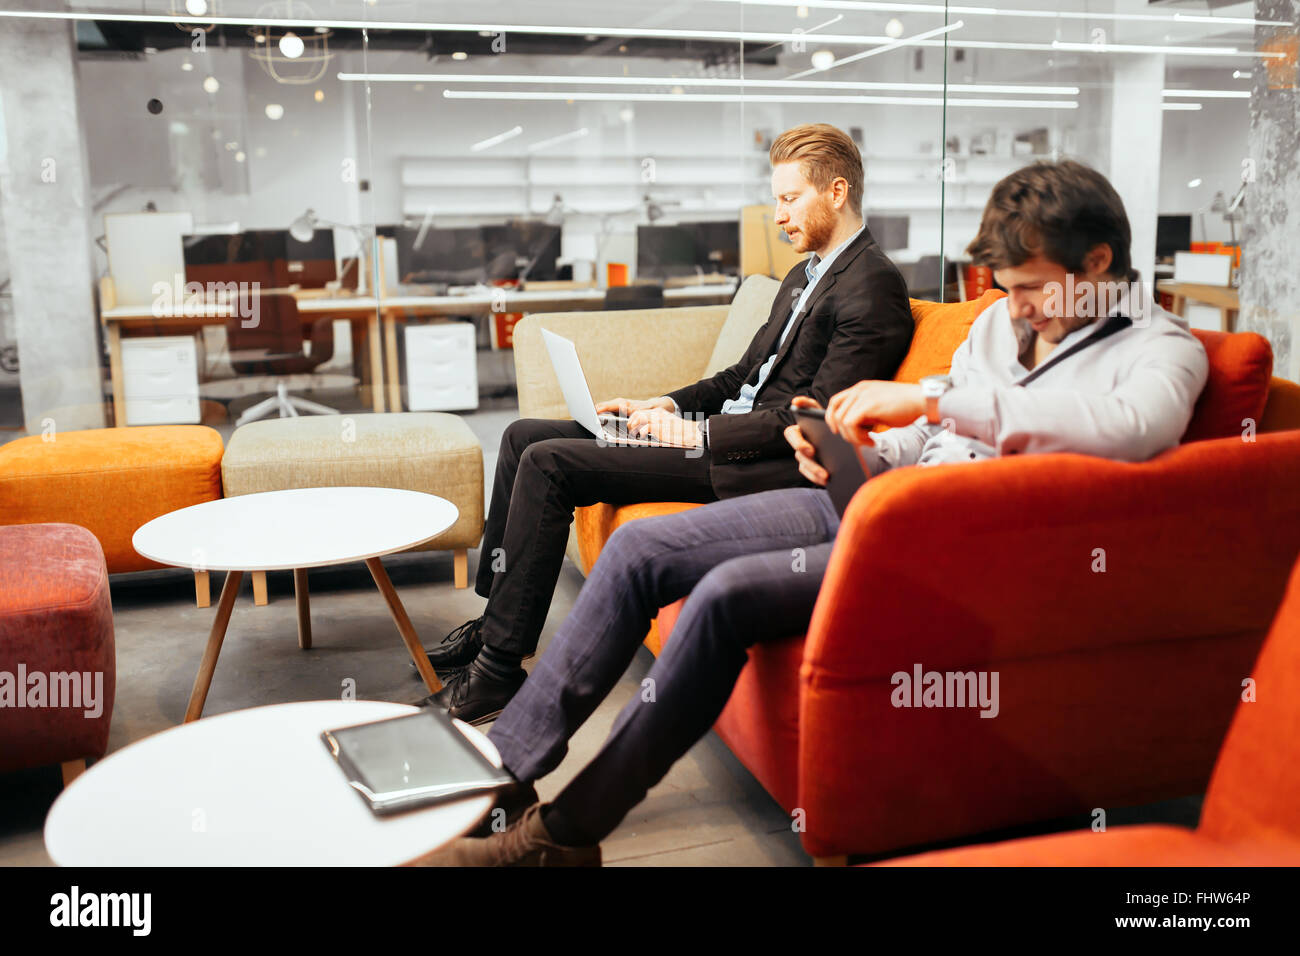 Businesspeople working while looking at devices and  laptops - Stock Image